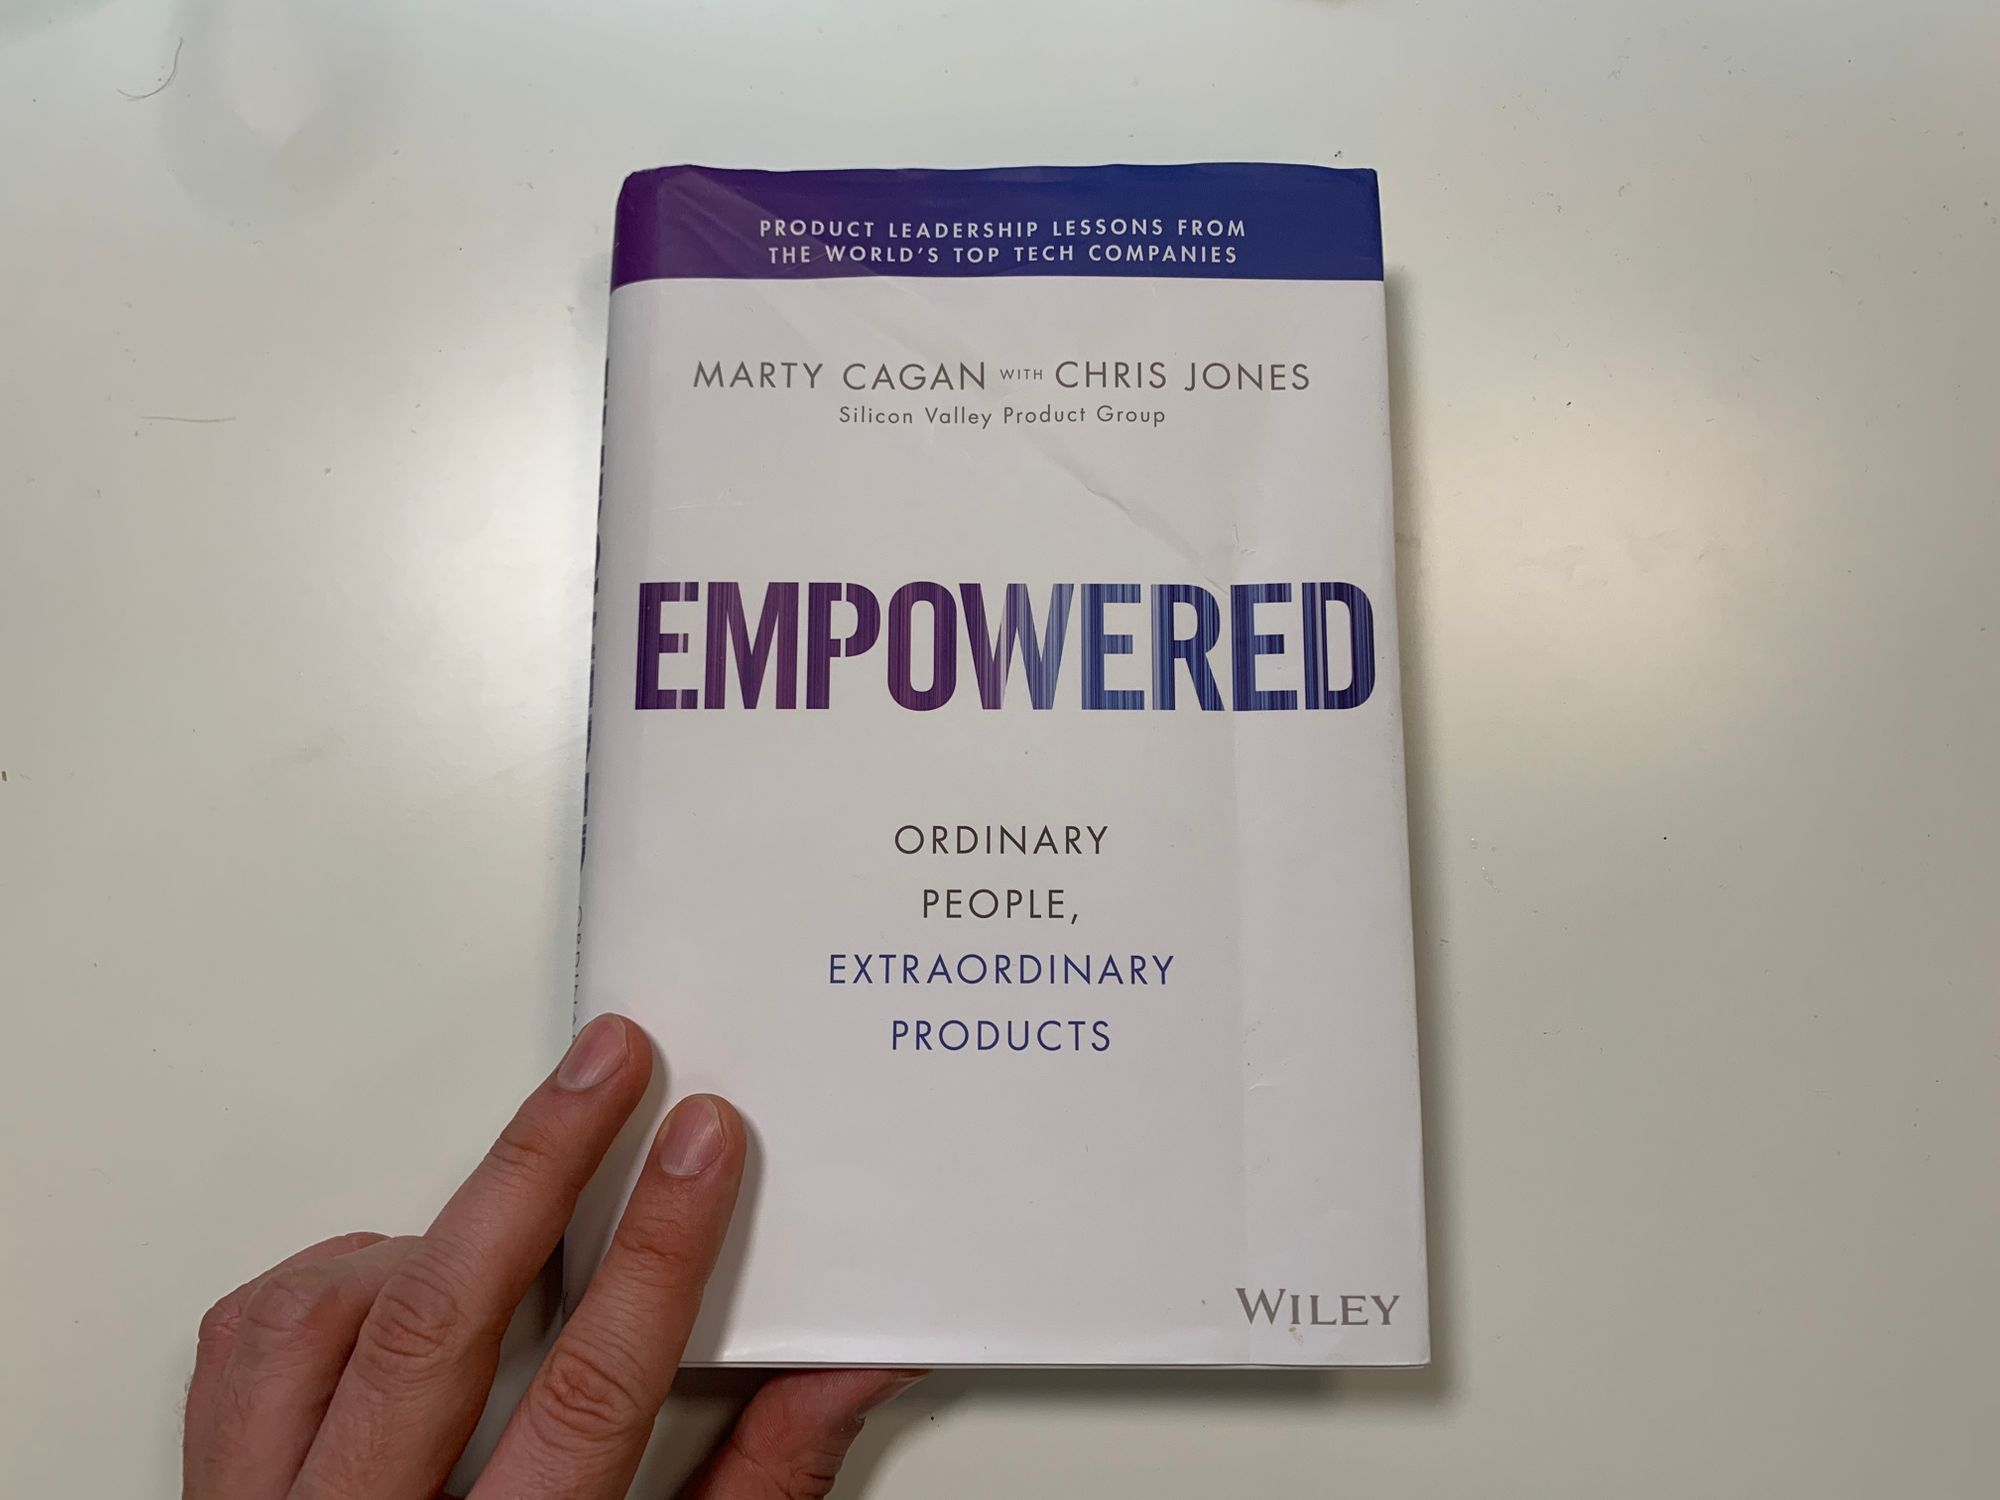 EMPOWERED Review: I Needed This Book 4 Years Ago